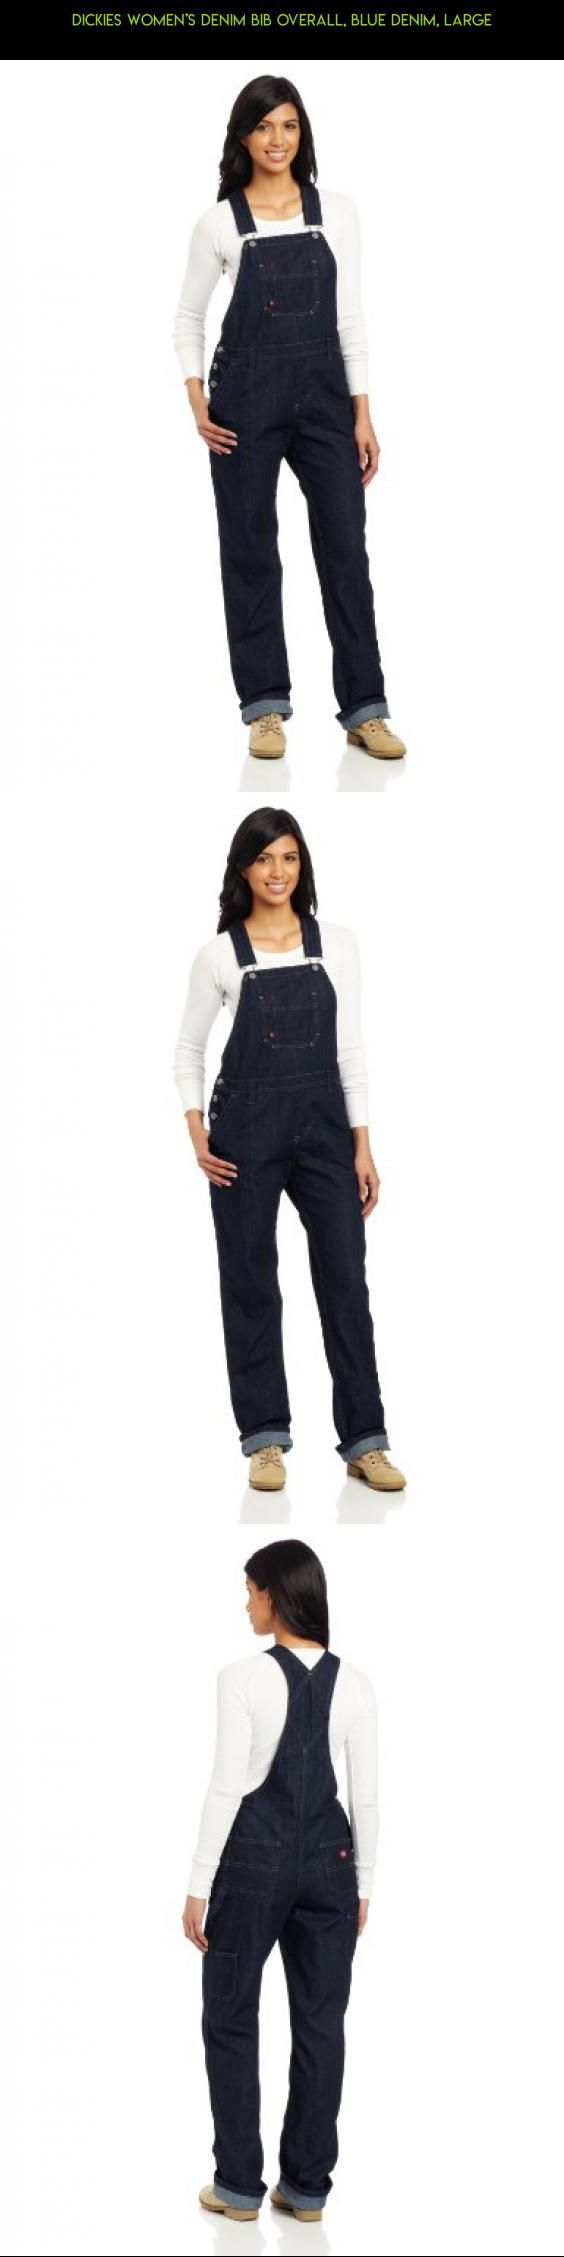 Dickies Women's Denim Bib Overall, Blue Denim, Large #gadgets #drone #products #parts #racing #plans #gardening #kit #for #camera #overalls #tech #technology #fpv #shopping #women